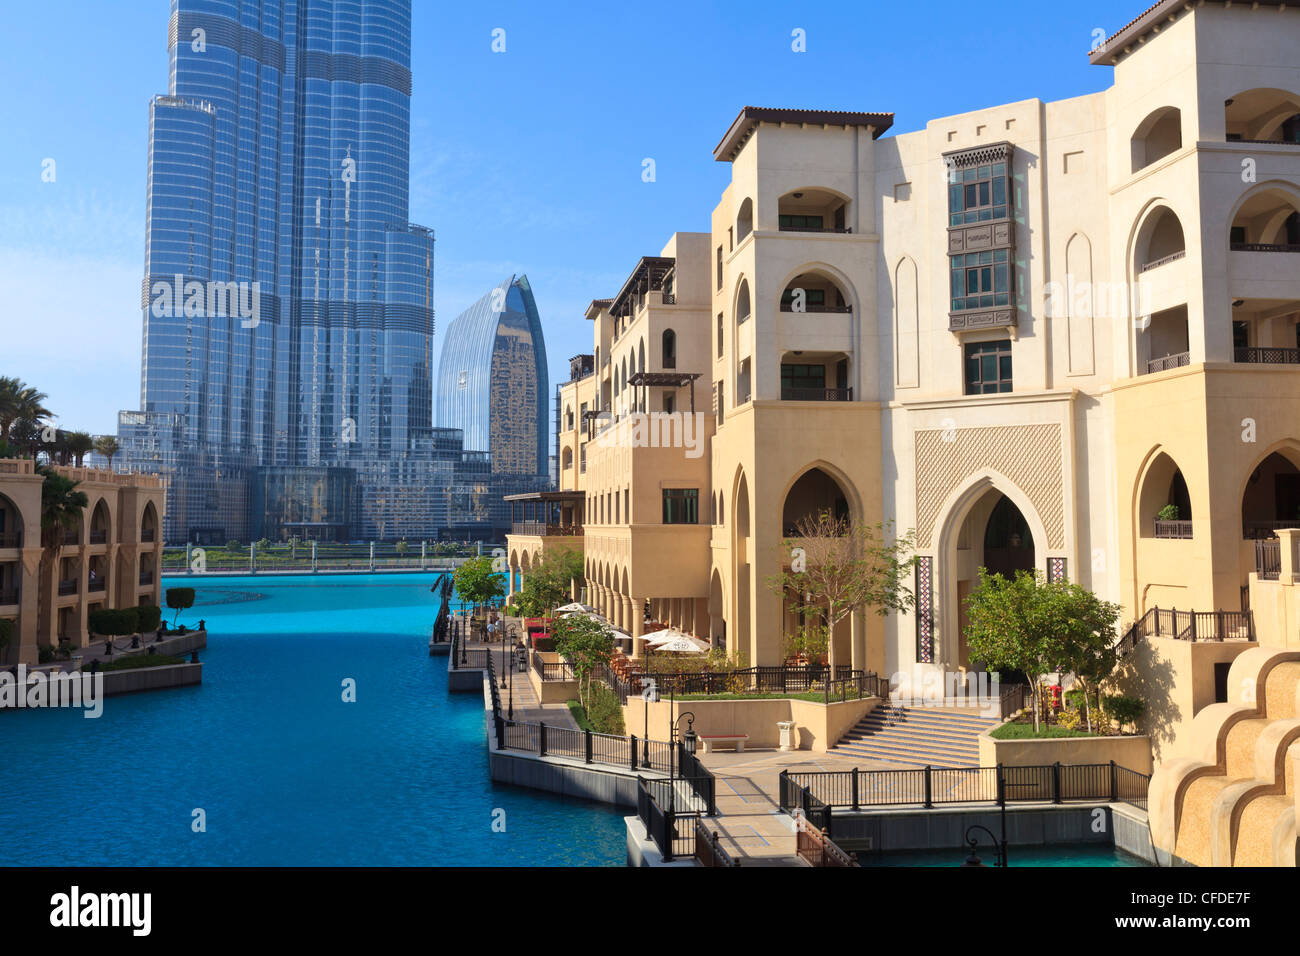 The palace hotel and burj khalifa downtown dubai united for Best hotels in downtown dubai